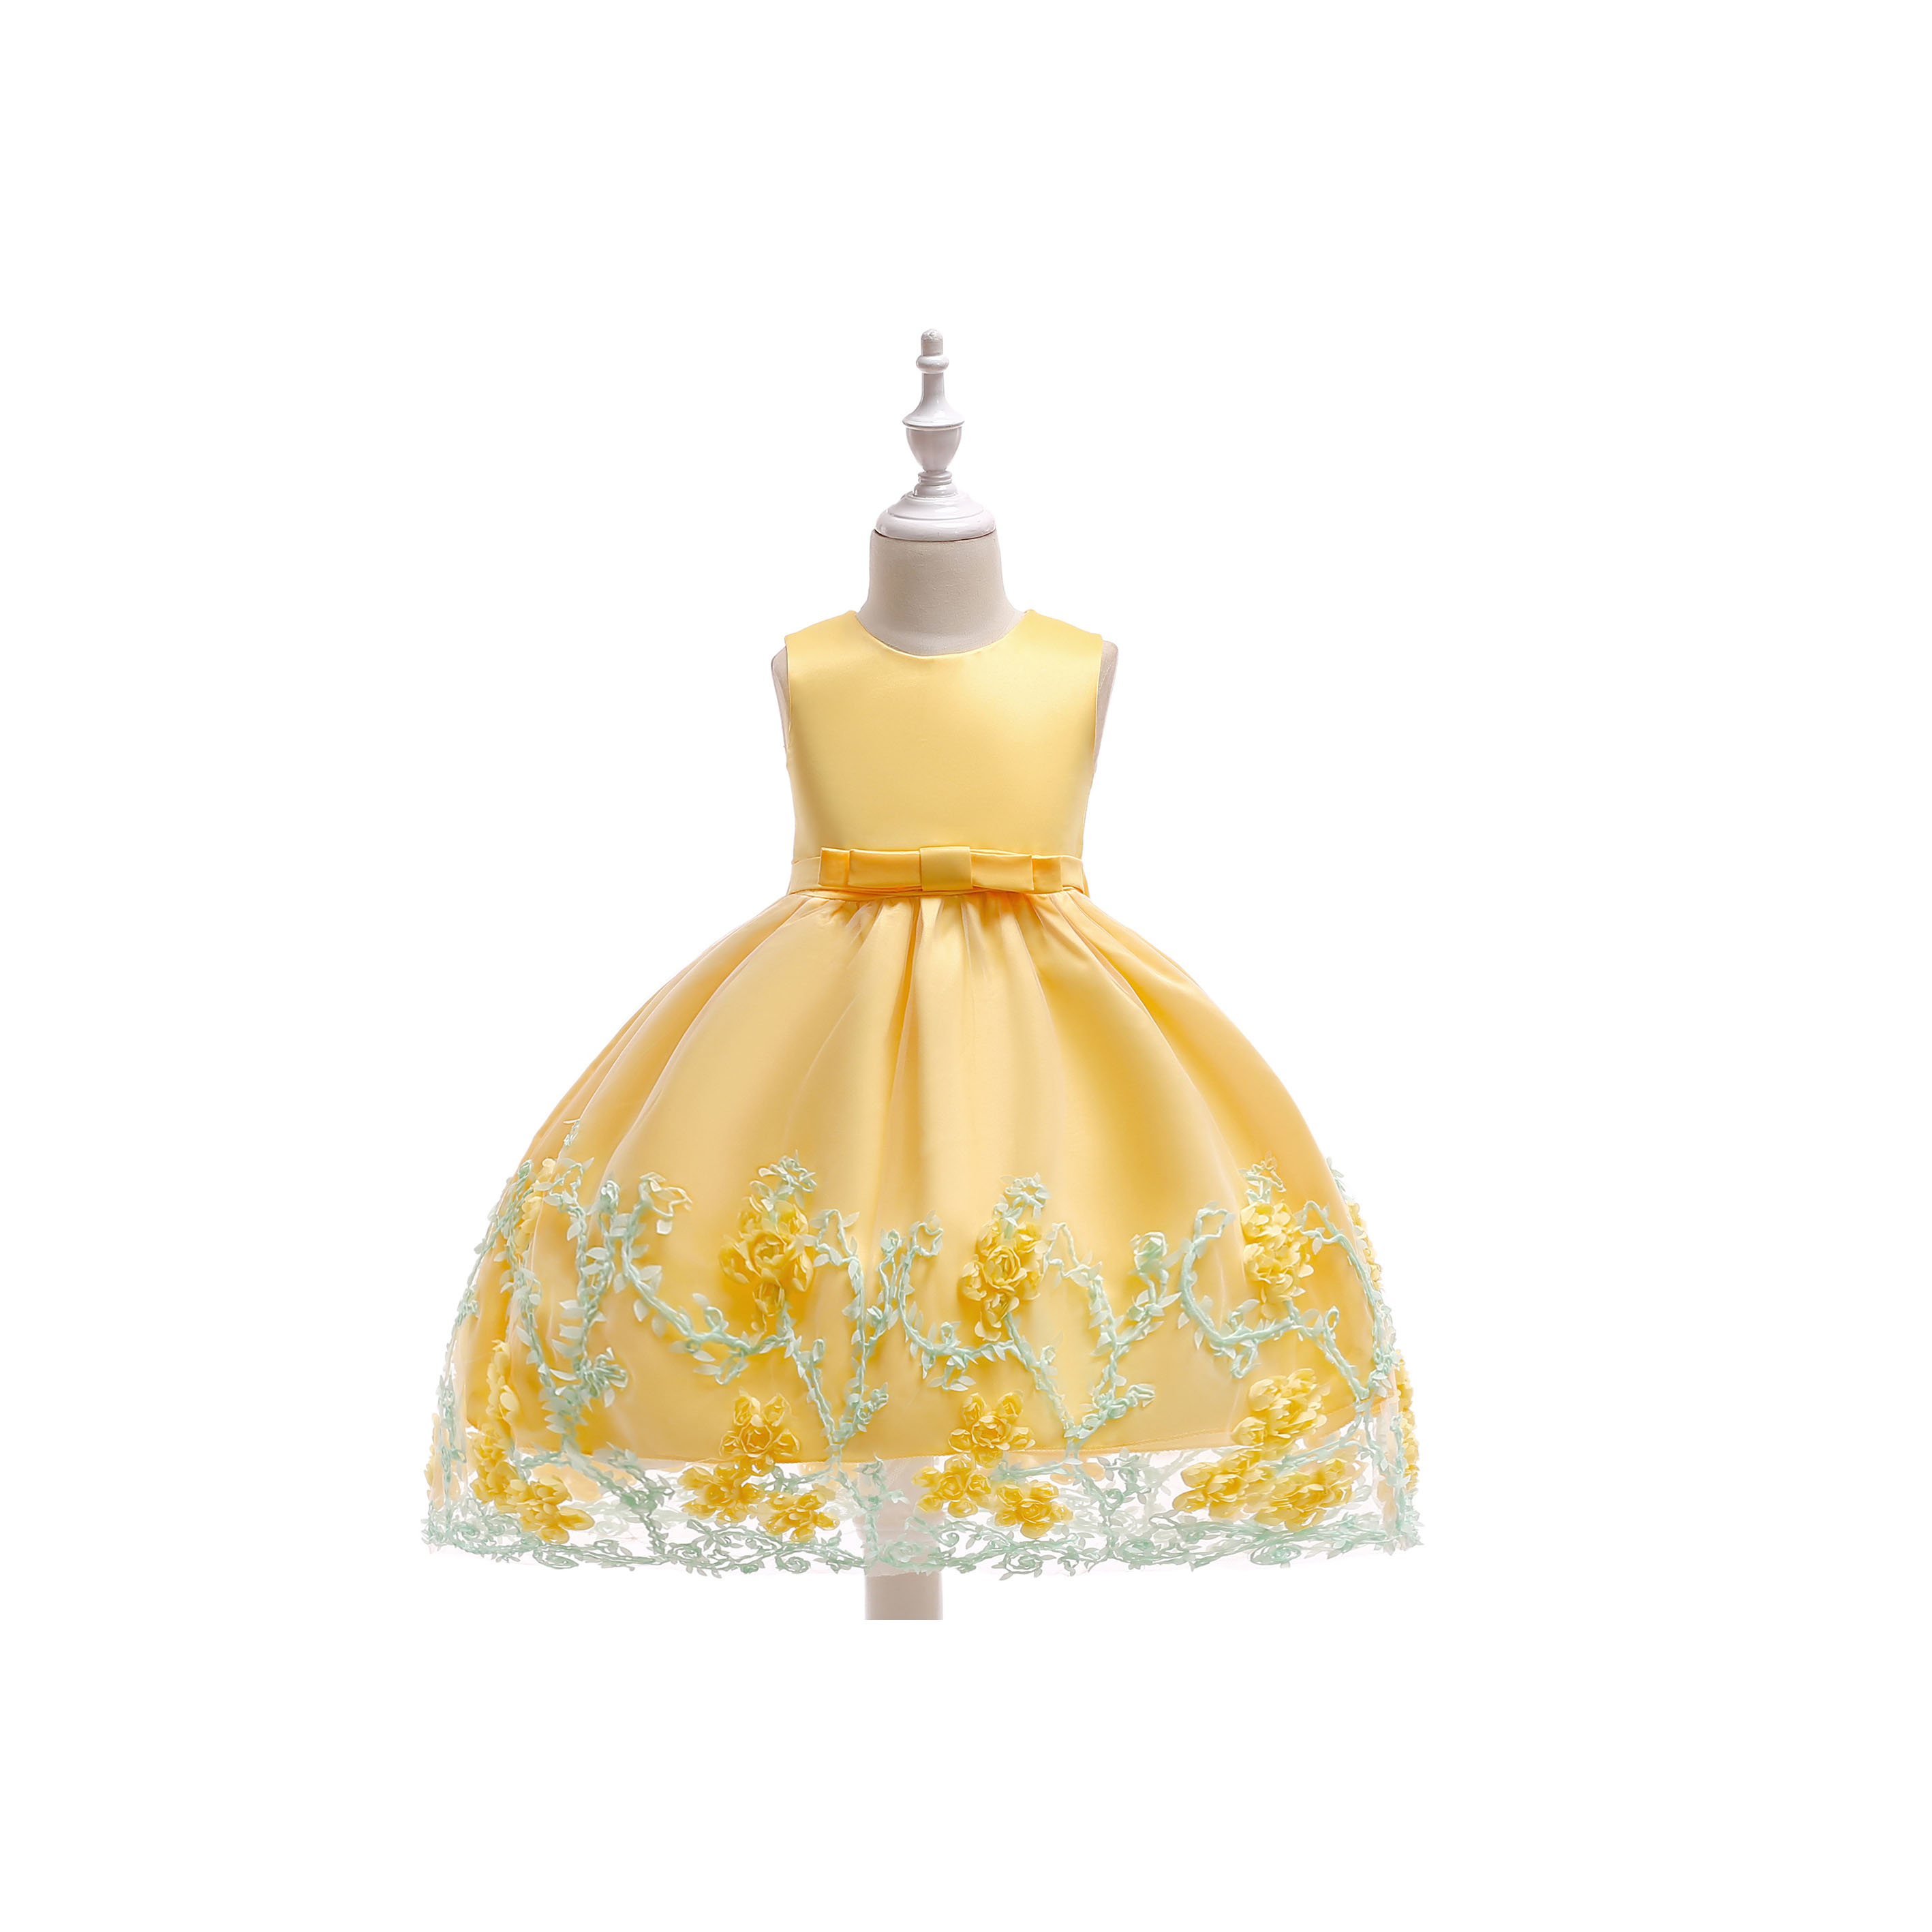 700e7b2d5 New Flower Girl Dress Birthday Prom Party Formal Tutu Gown Children Clothes  Yellow on Luulla